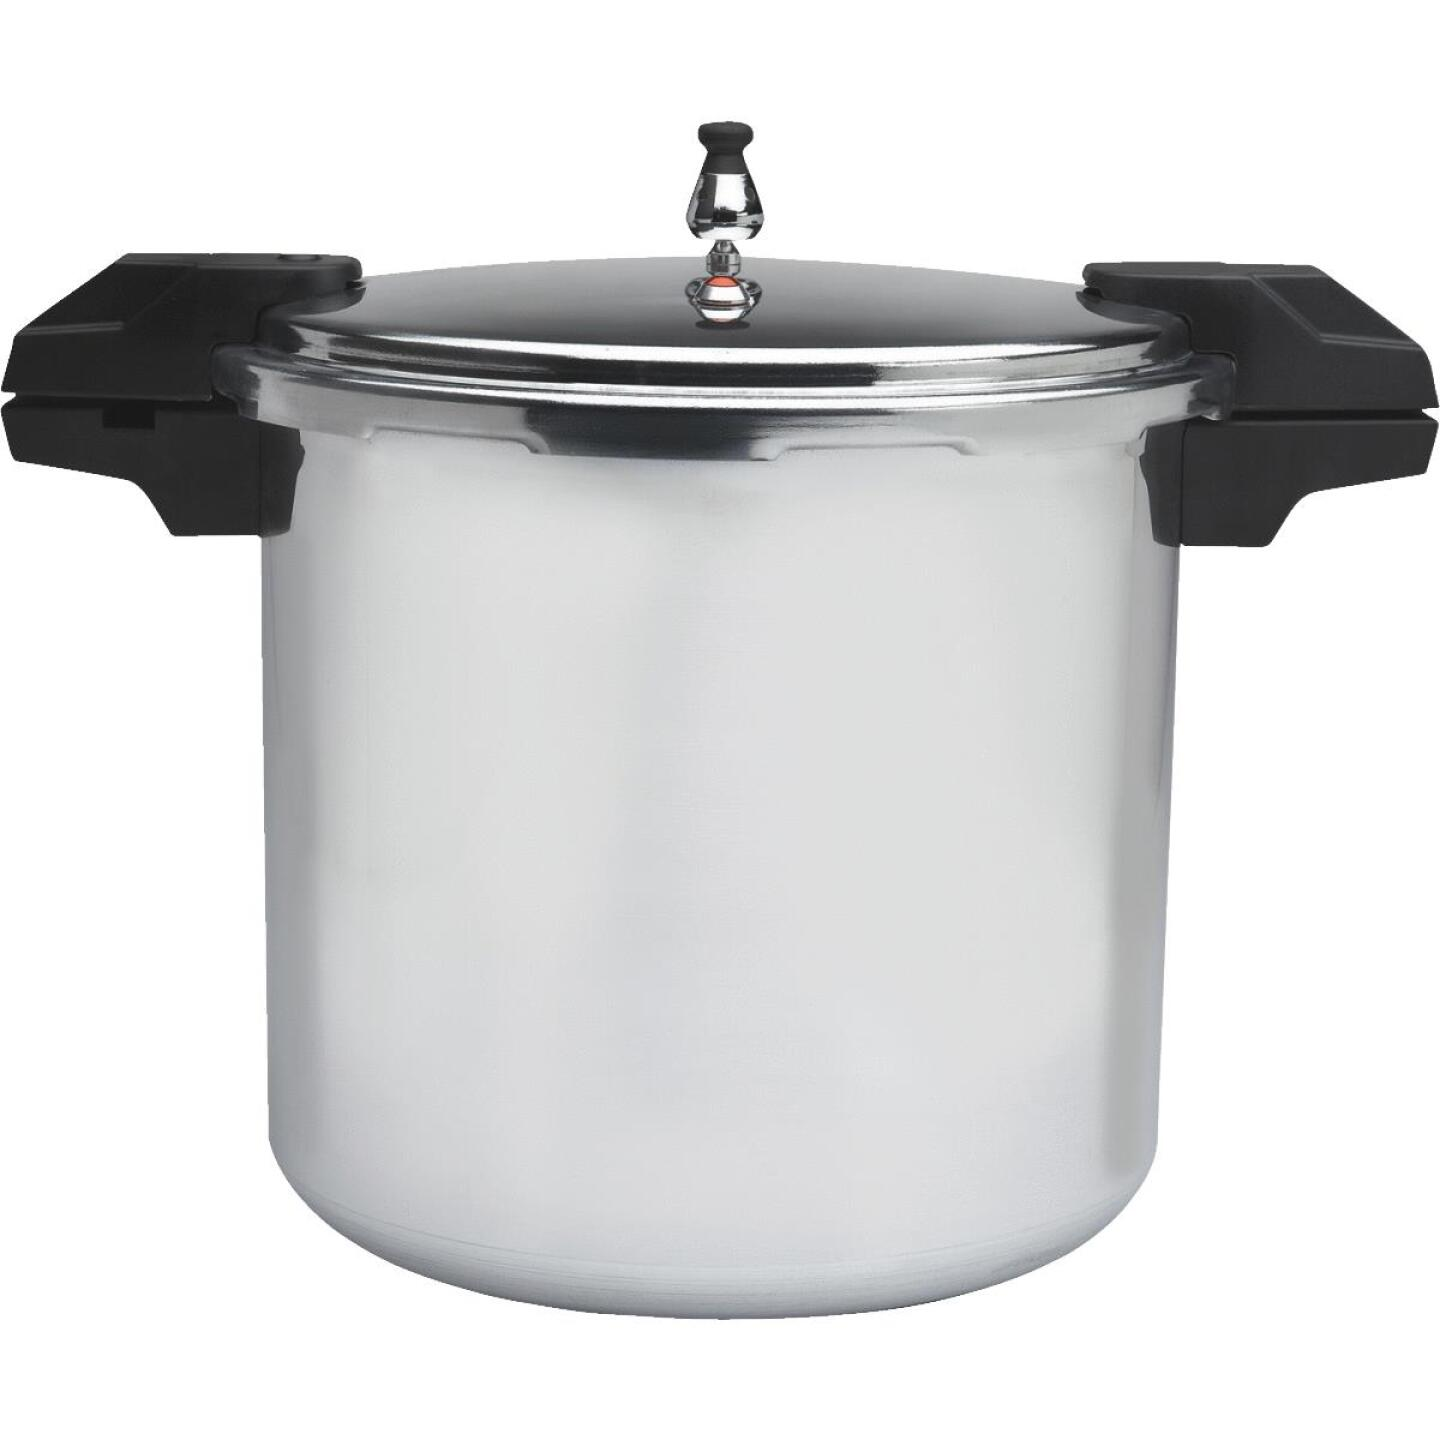 IMUSA 22 Qt. Aluminum Pressure Cooker and Canner Image 1